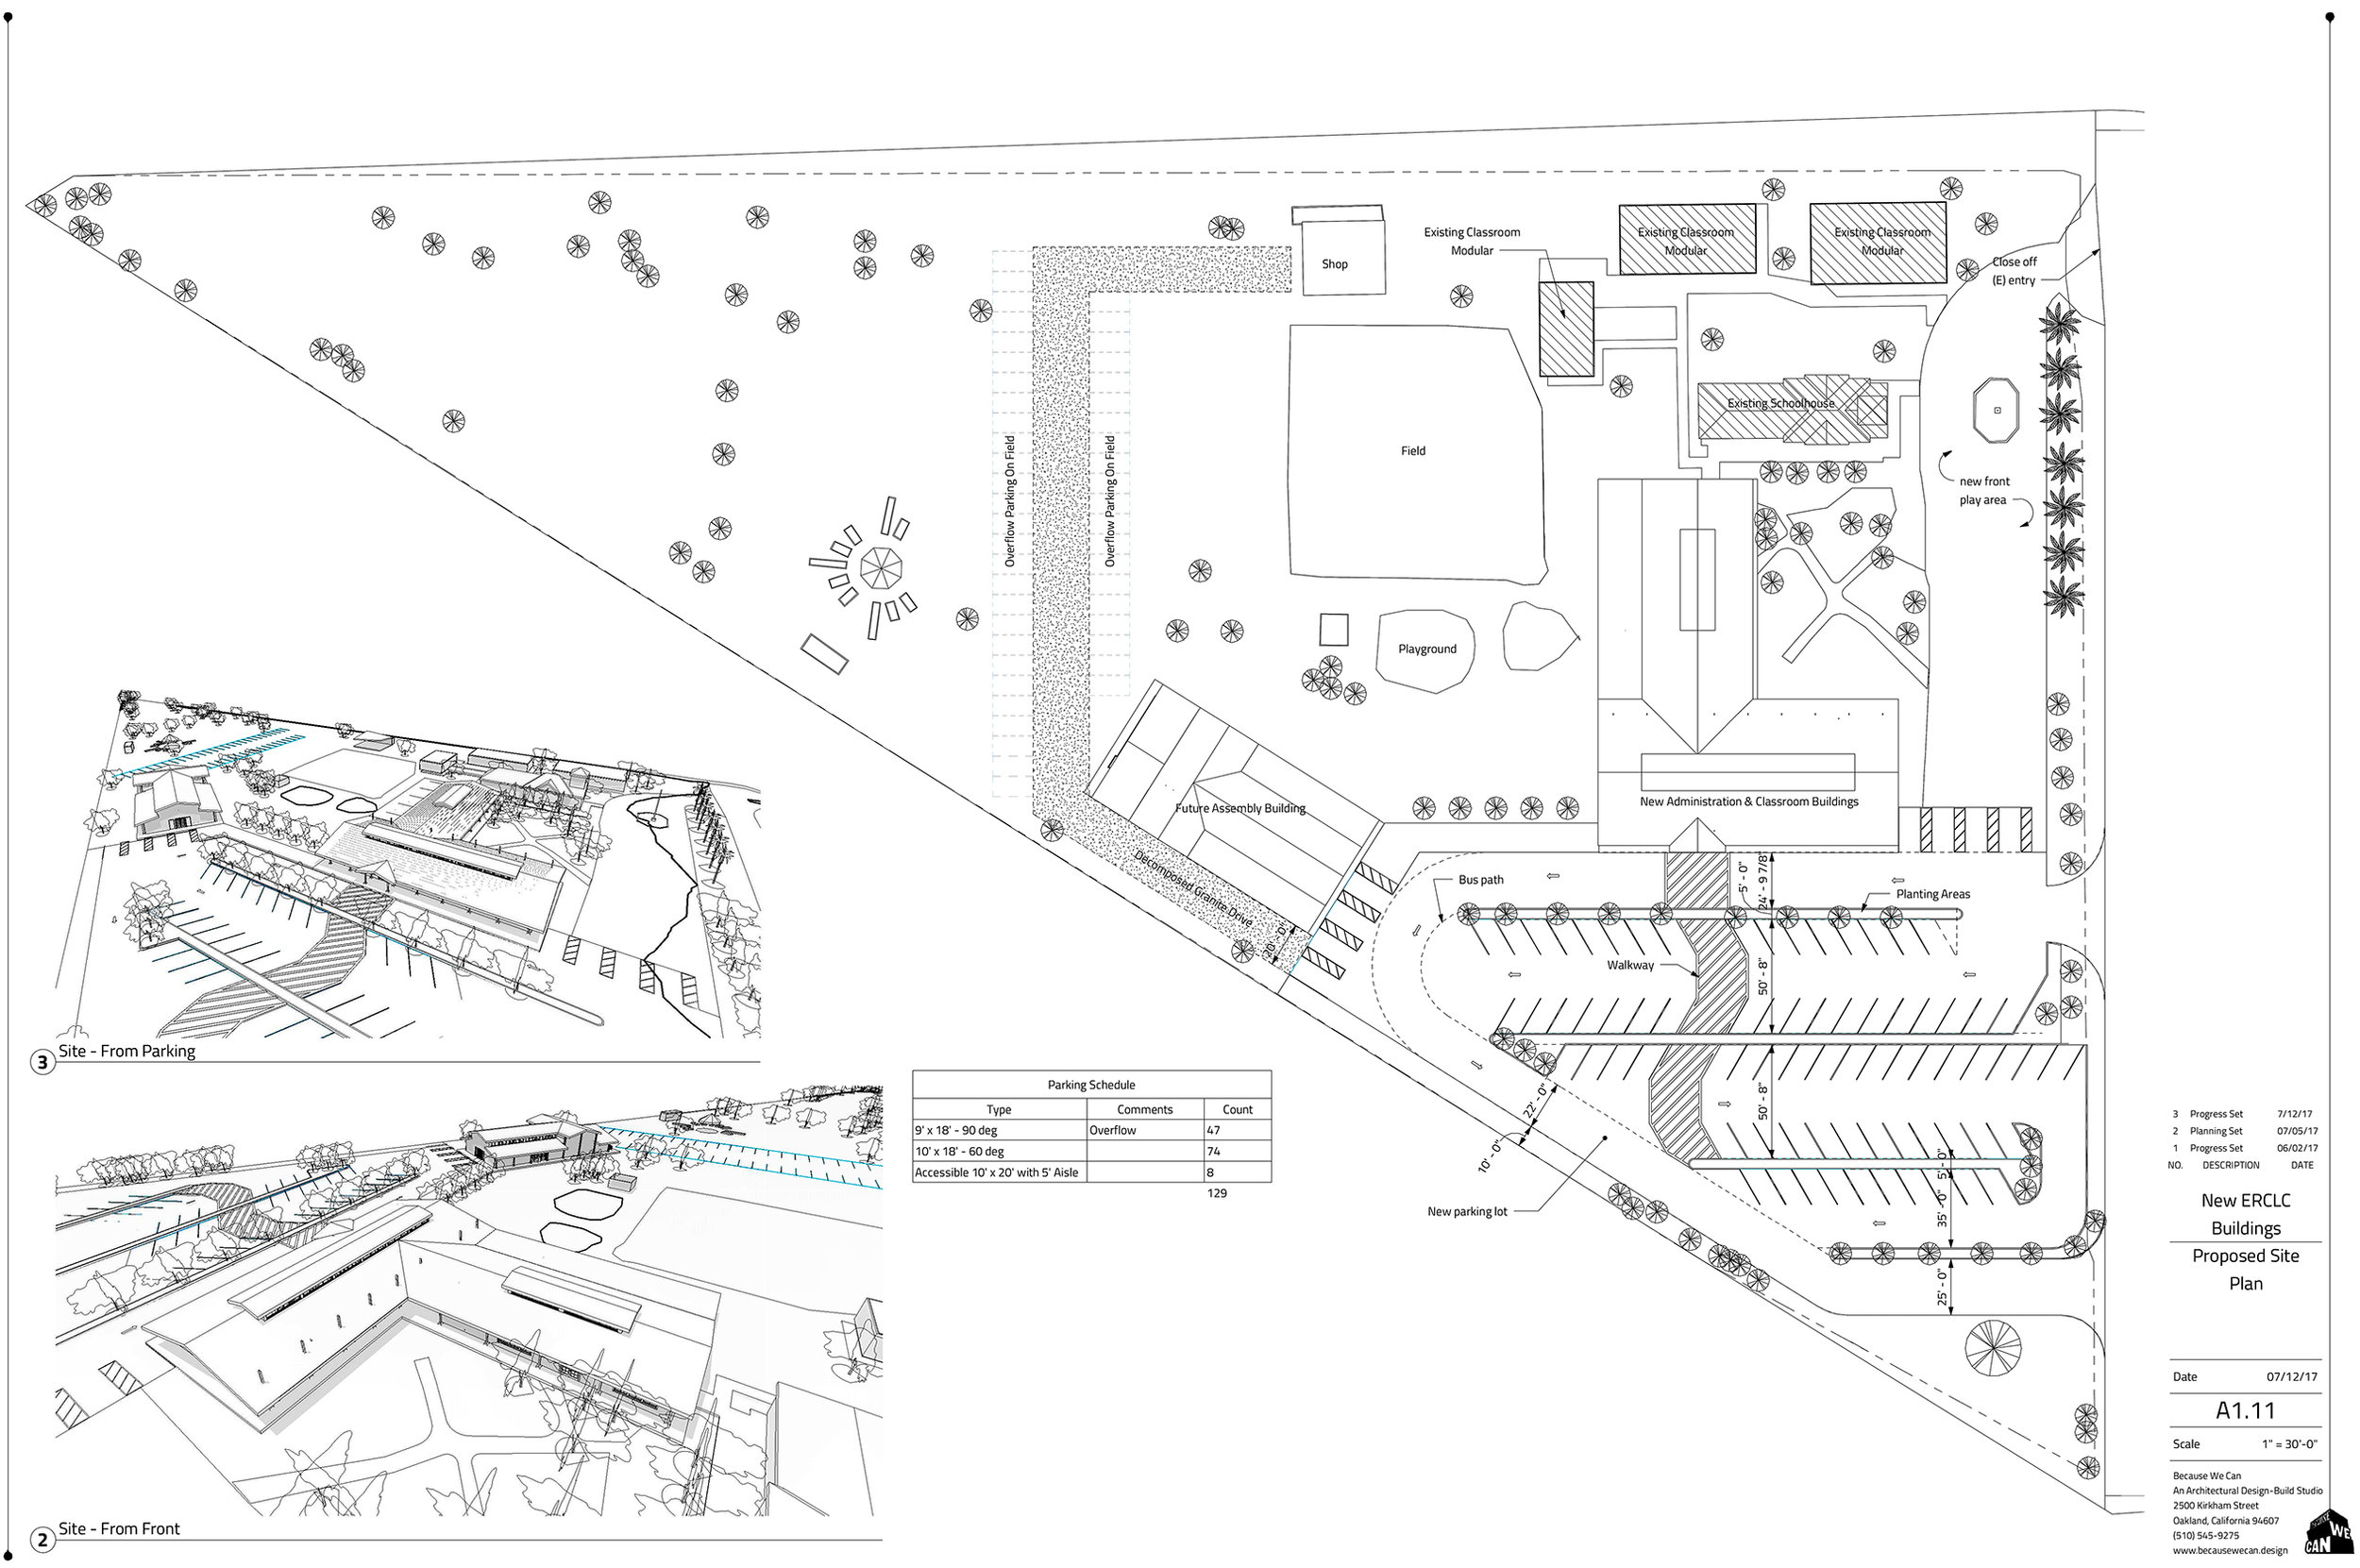 The site plan in its final configuration, a large lot with many uses and difficult areas. We paid particular attention to not over shasowing the original historic building, while creating a highly functional site plan.